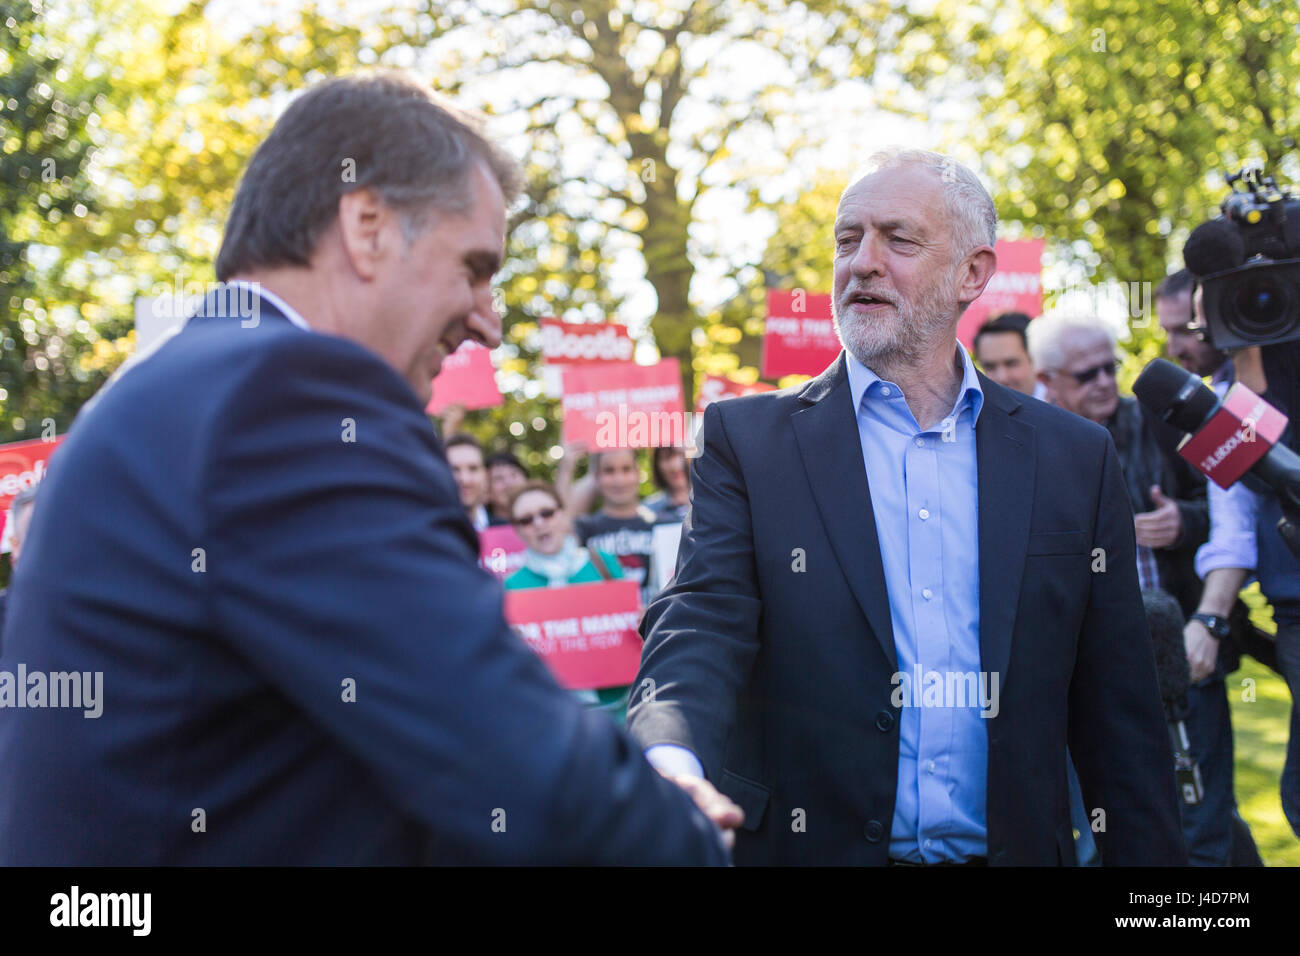 Jeremy Corbyn, Leader of the Labour Party, oins newly elected Metro Mayor of the Liverpool City Region Steve Rotheram - Stock Image